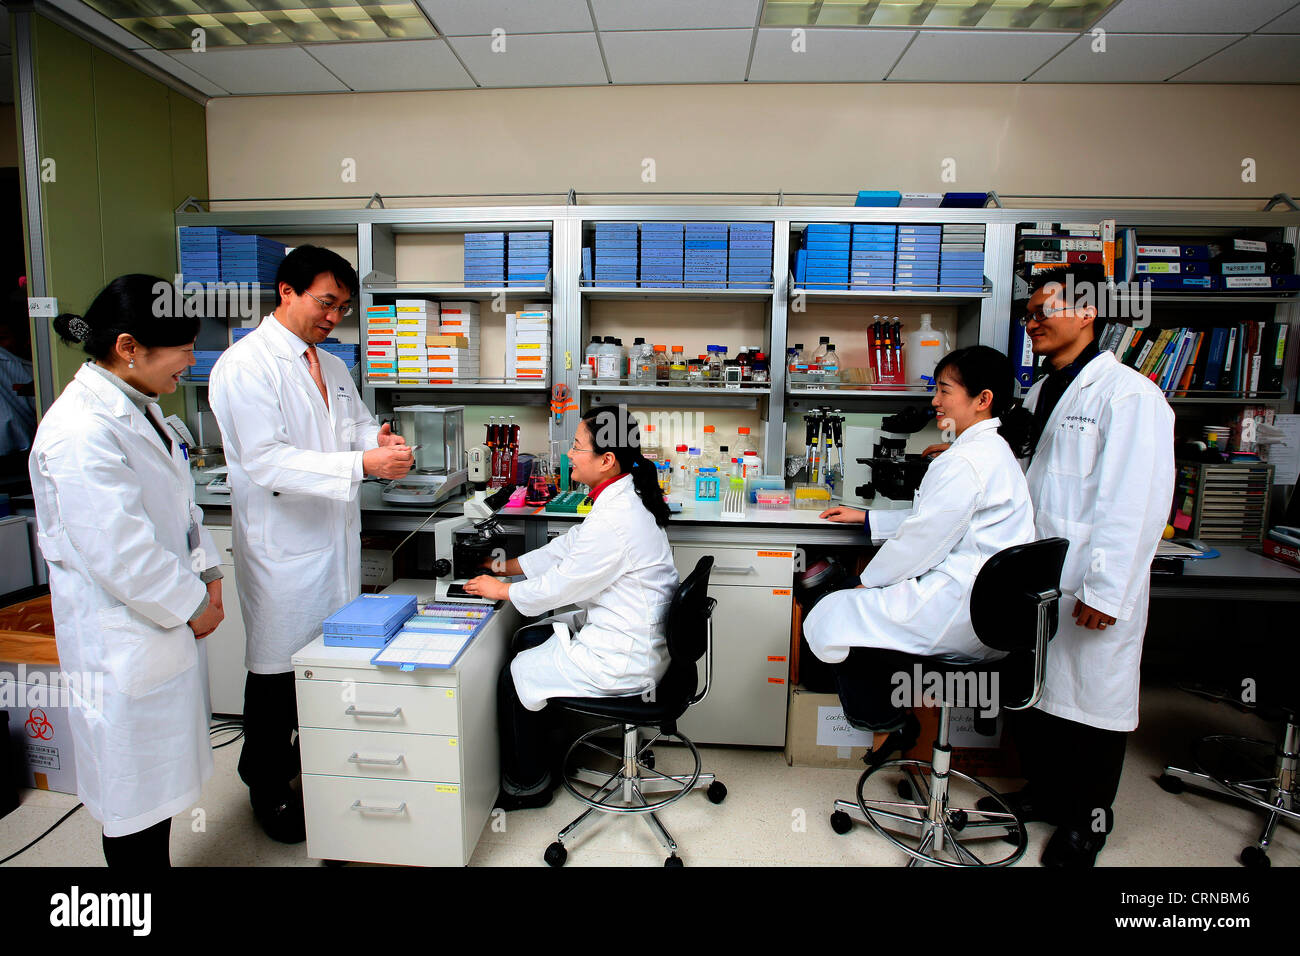 Students at the Samsung Biomedical Institute, Korea. - Stock Image